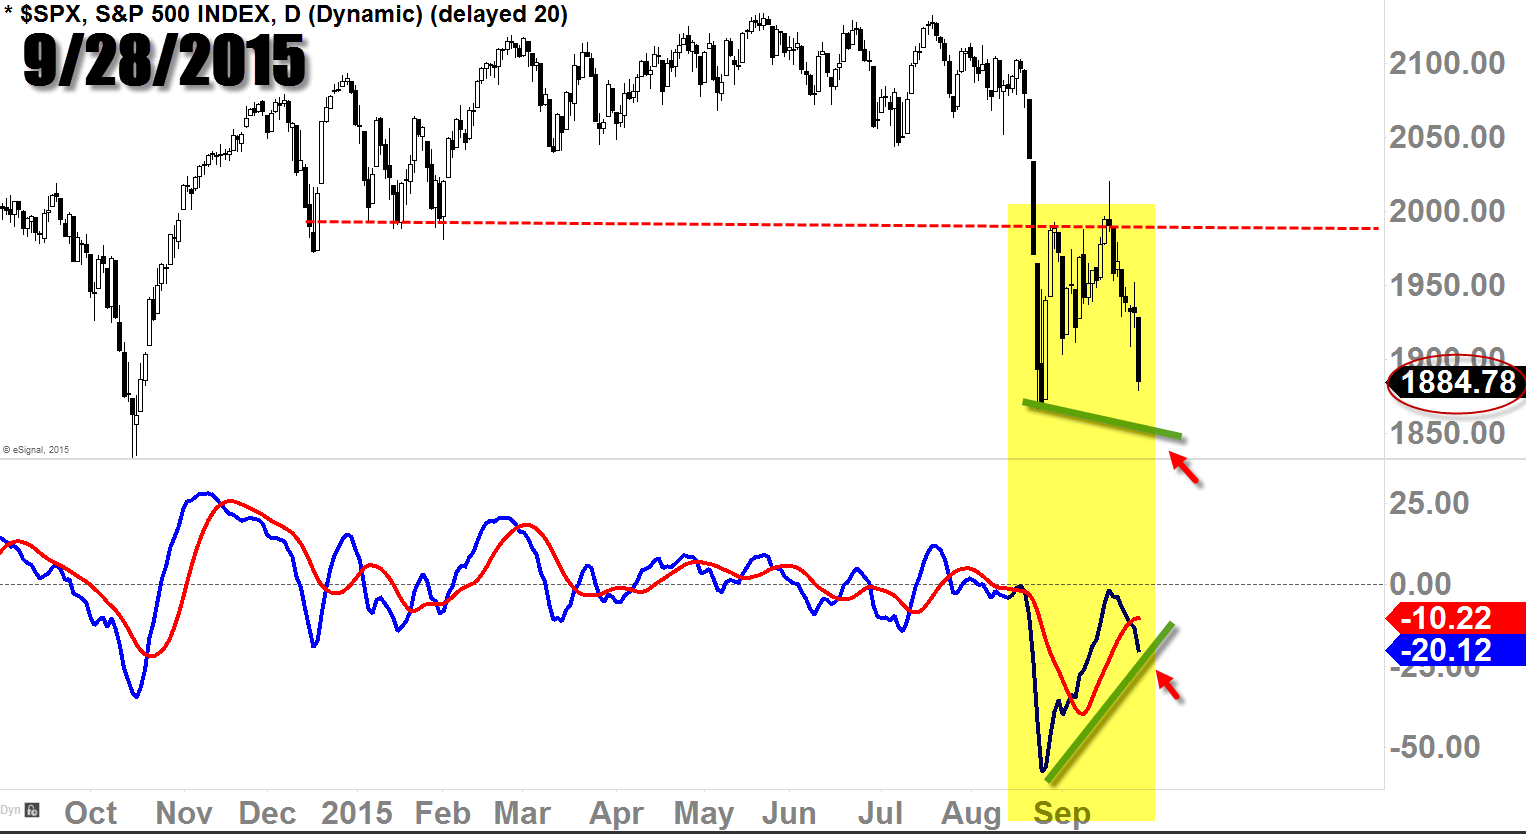 S&P 500 ($SPX) Daily Chart with MACD Screened on 9/28/15